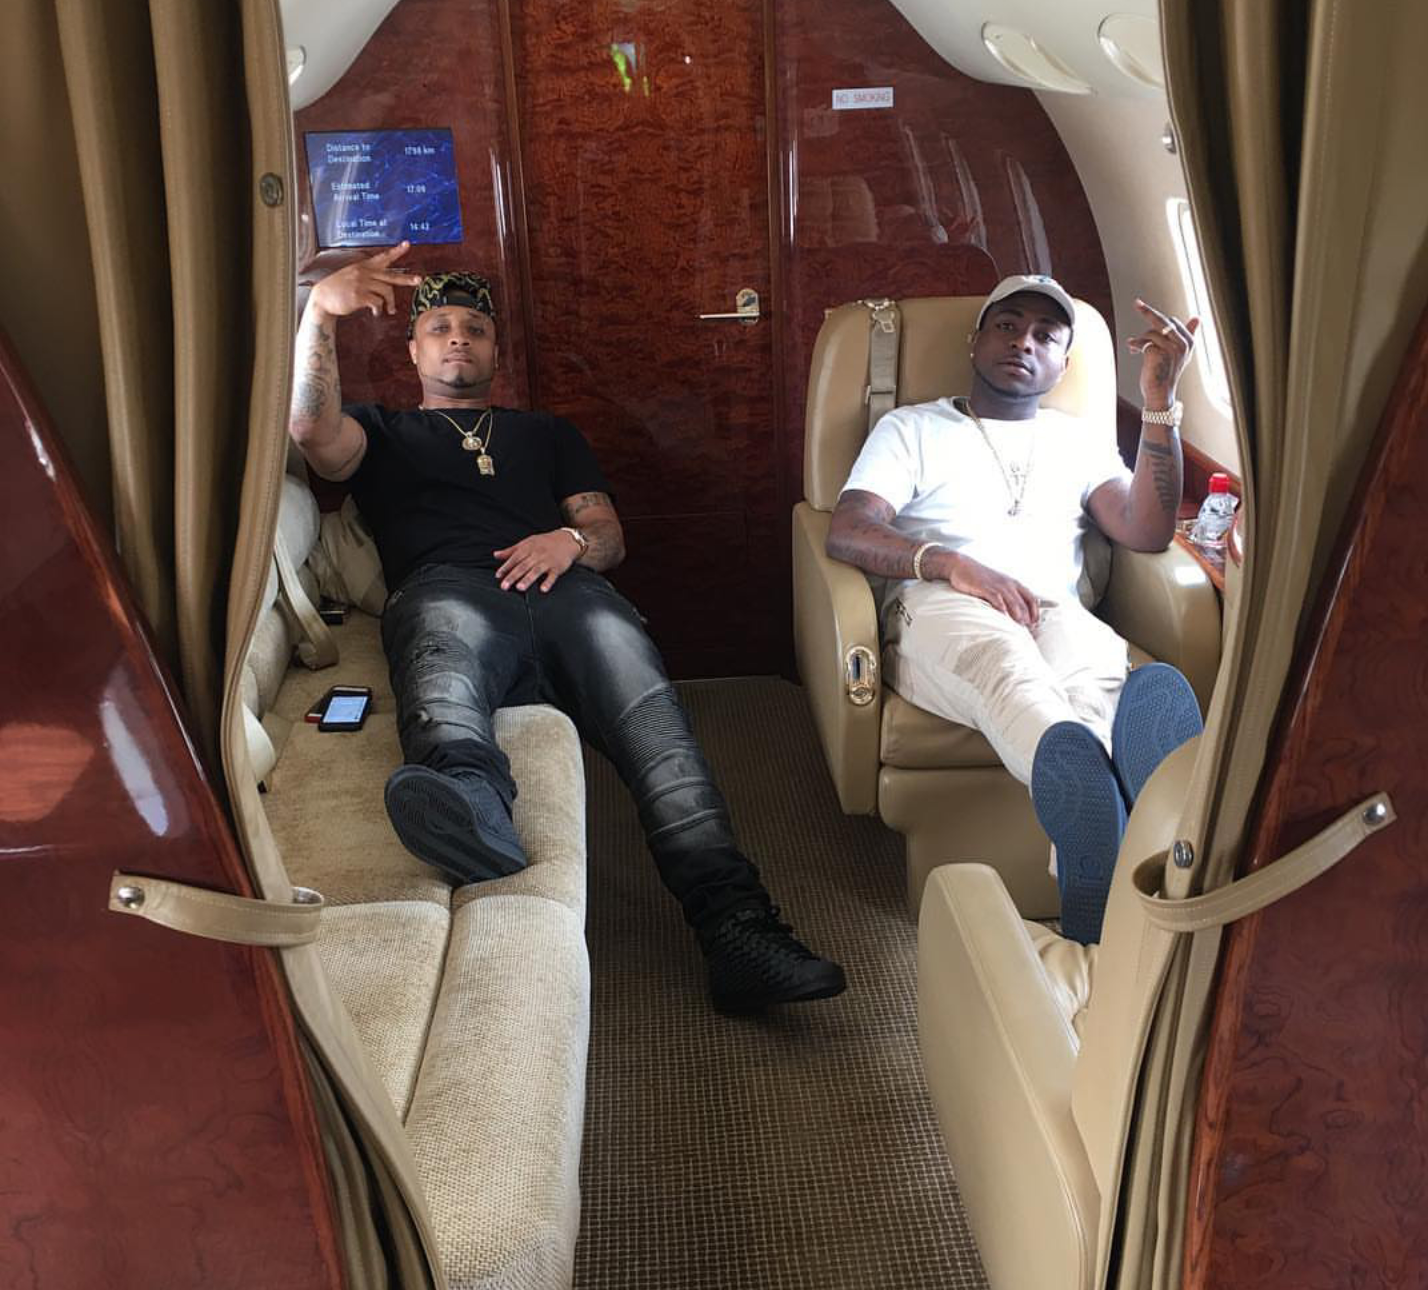 Nigeria singer Davido and his crew flew on a private jet to